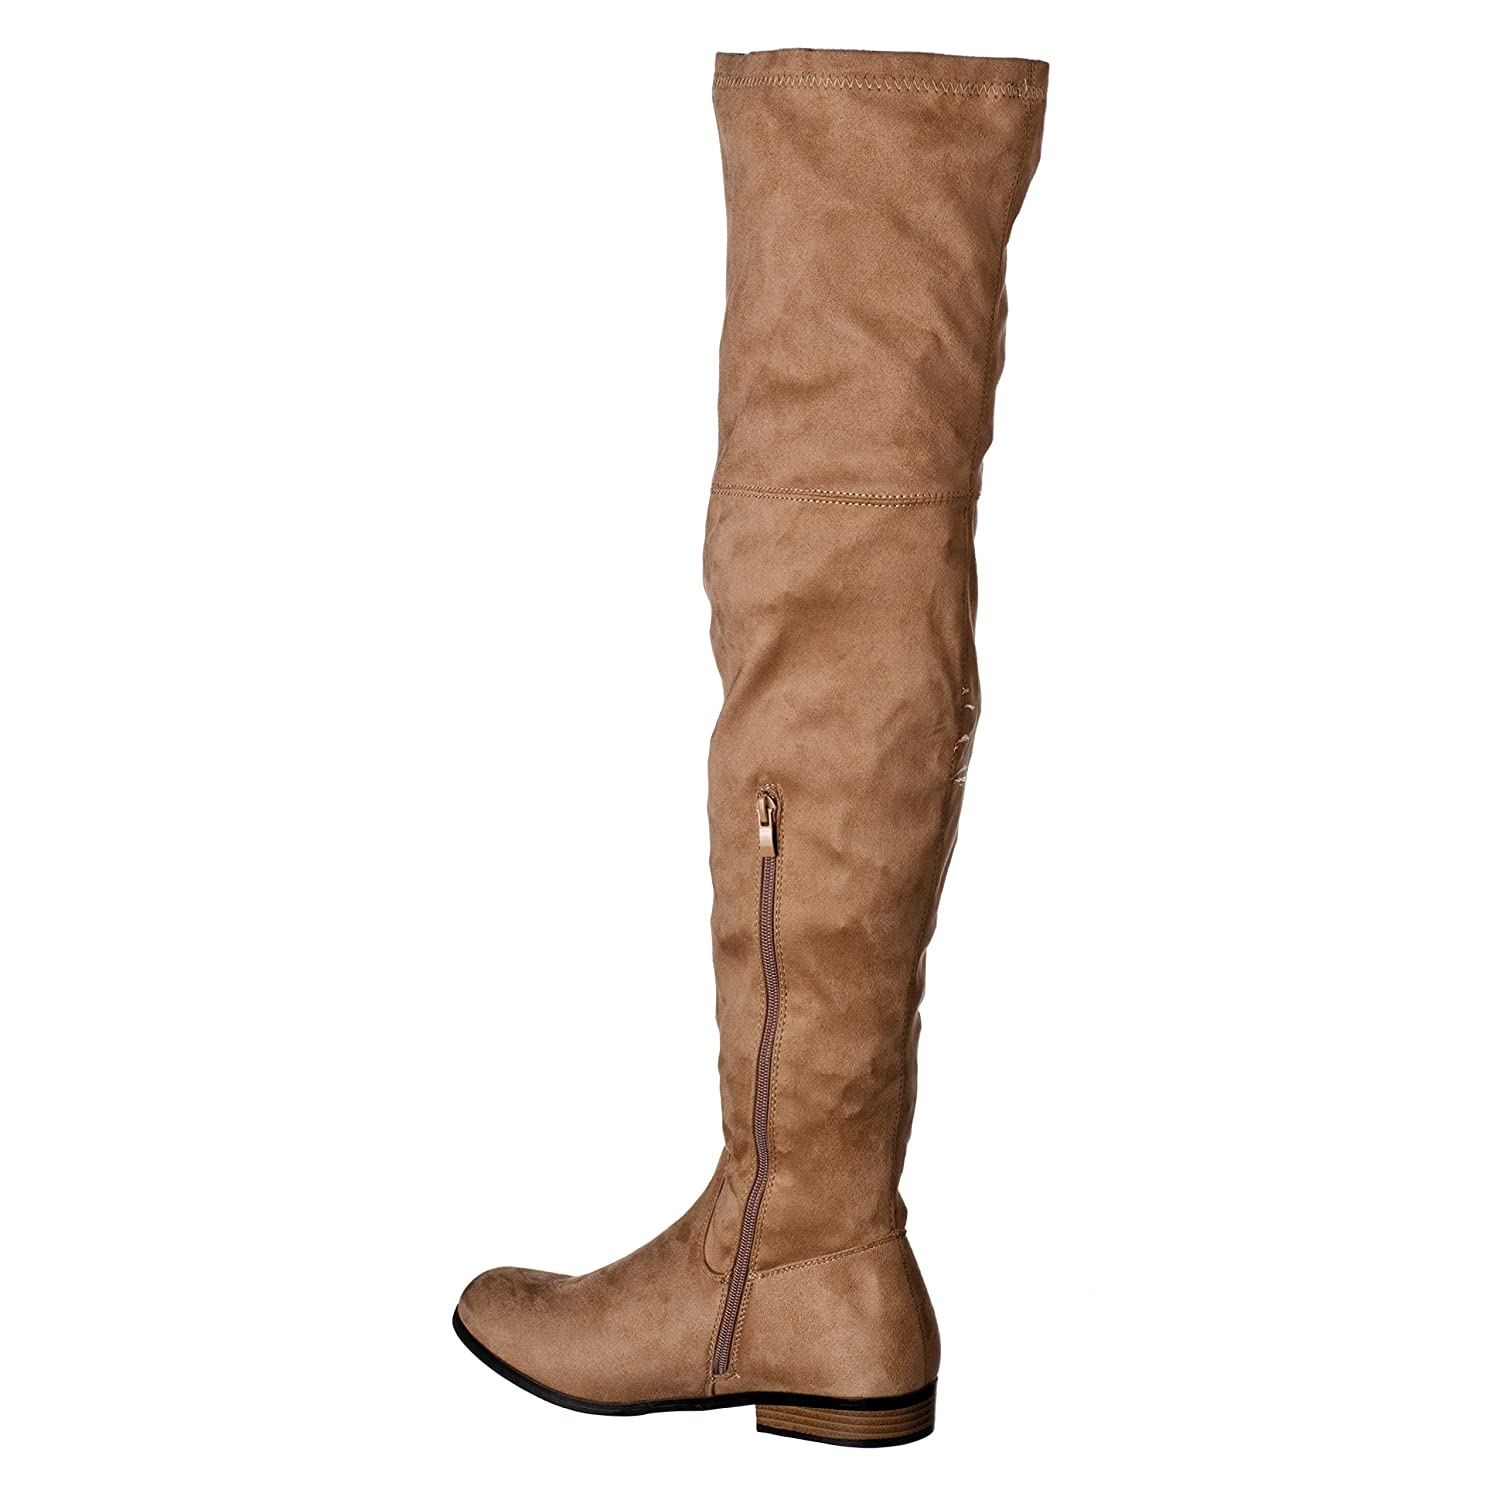 6aef4a0a099bf Amazon.com | Riverberry Women's Gina Thigh-High, Heeled Faux Suede Boots |  Over-the-Knee